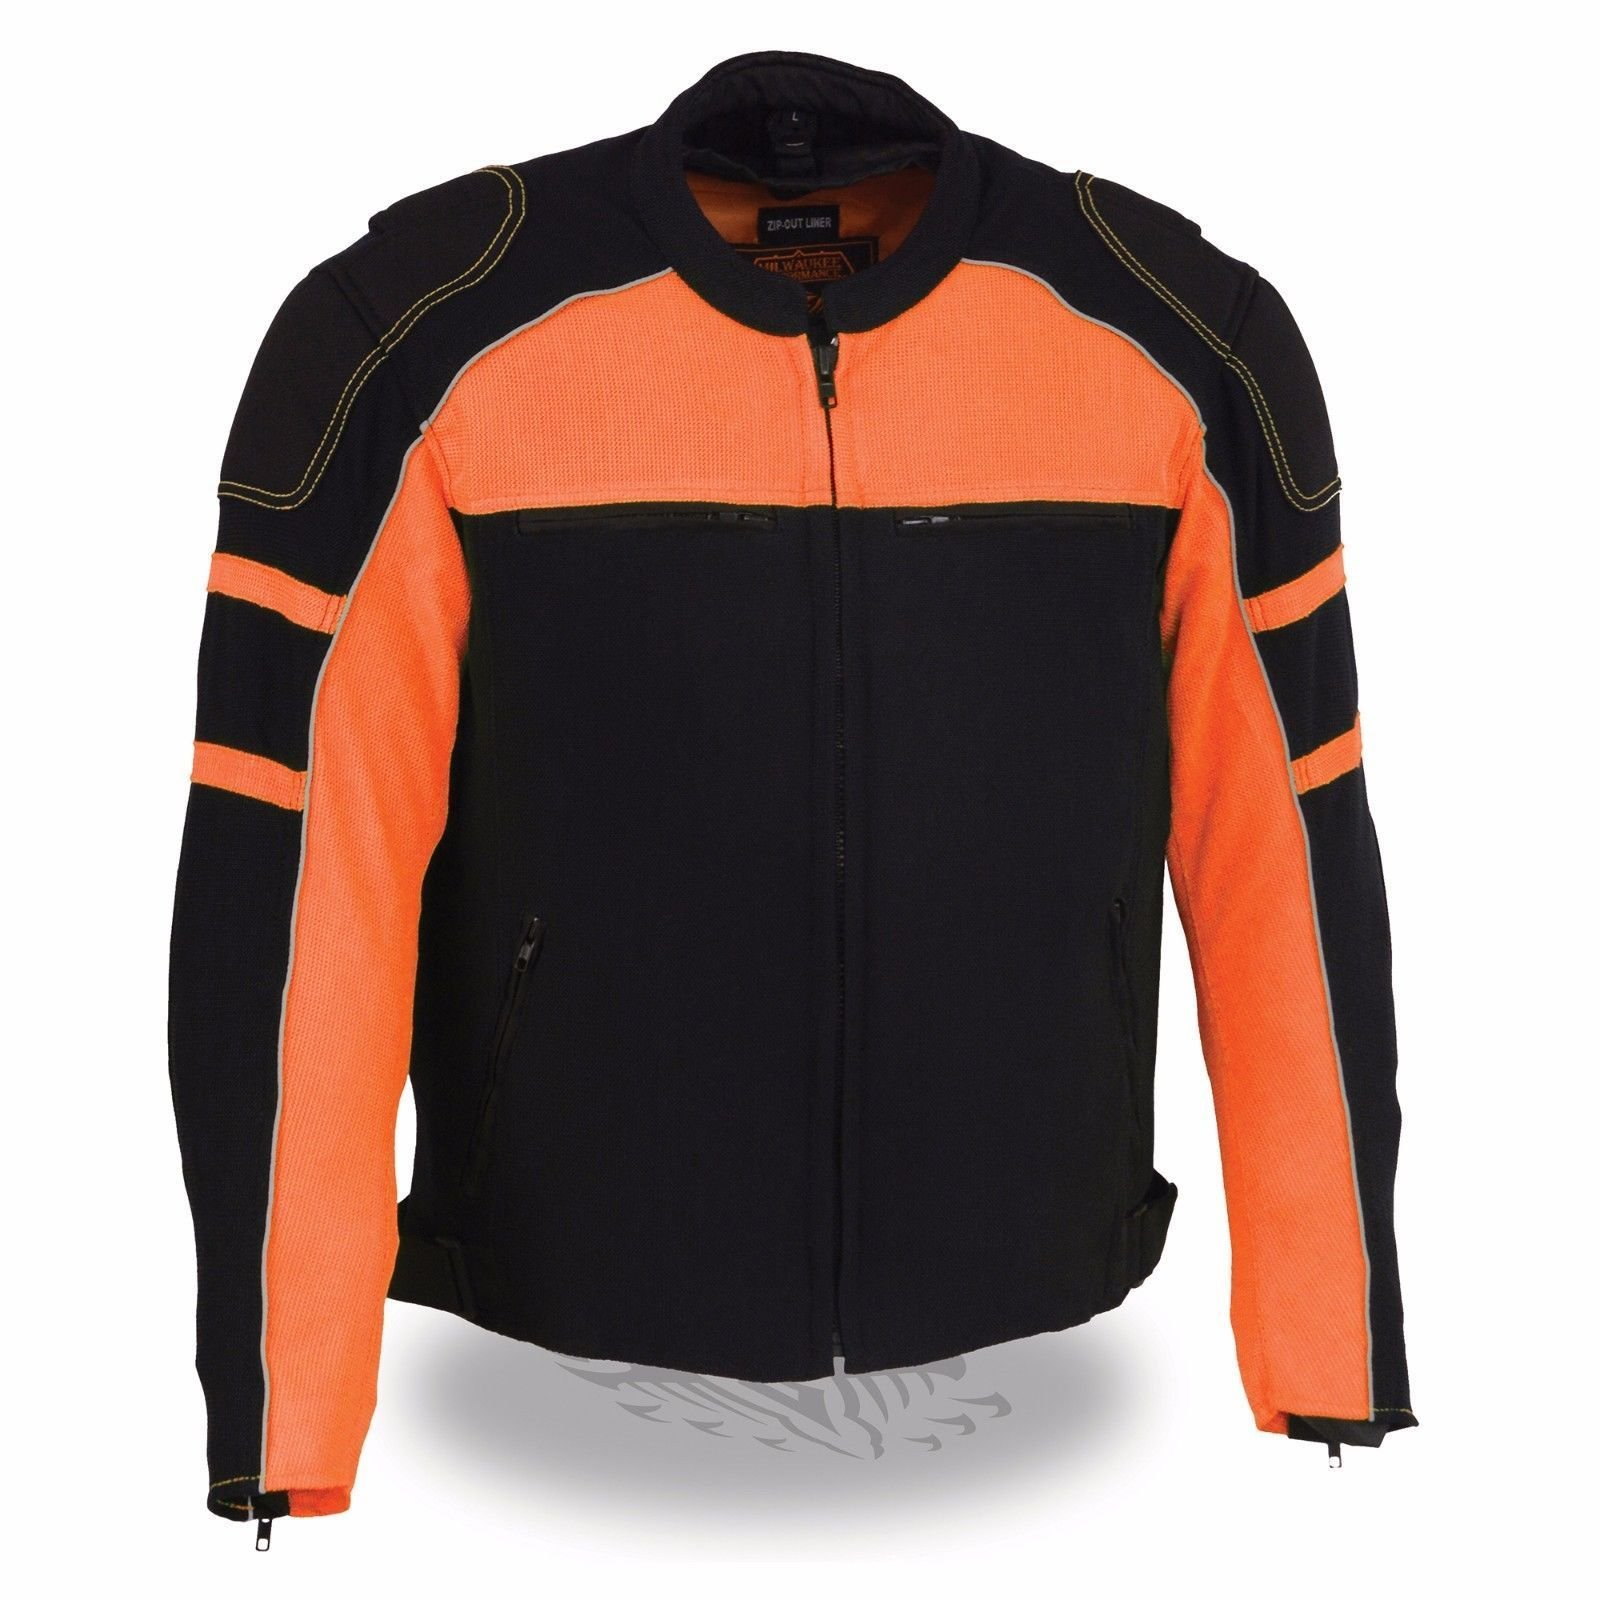 Mens Motorcycle Riding armors & Rain jacket Liner Mesh Blk/Orange Jacket (3XL Regular)